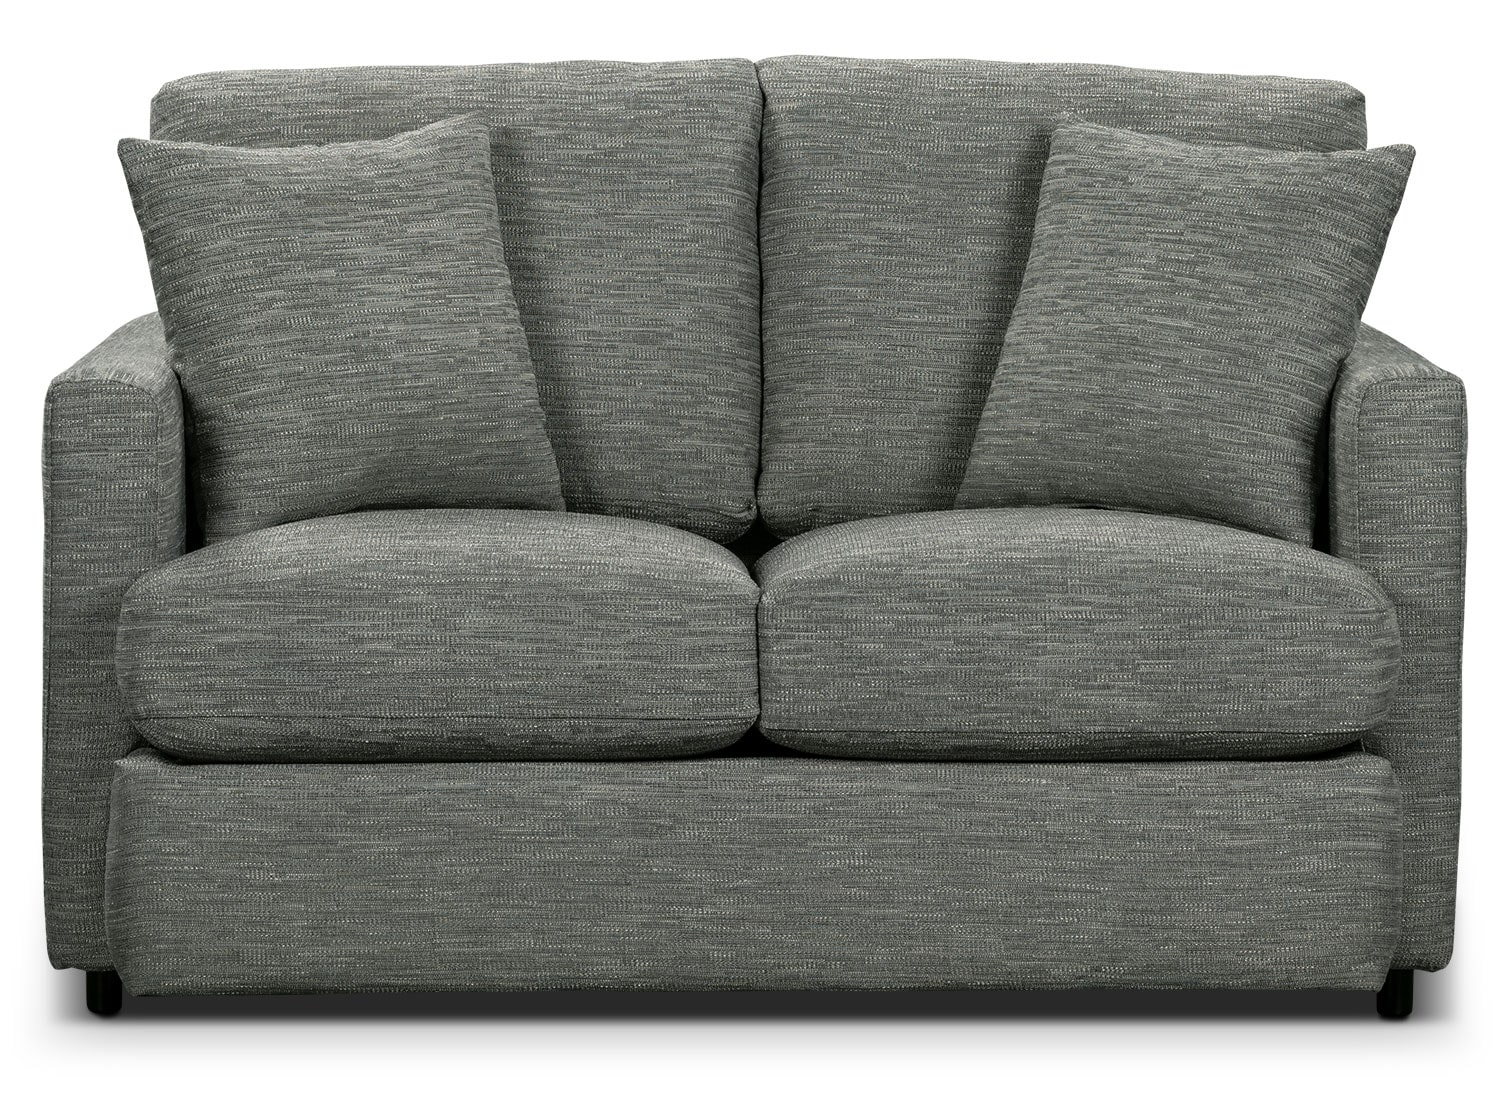 Living Room Furniture - Urbana Chenille Studio-Size Loveseat - Dark Grey